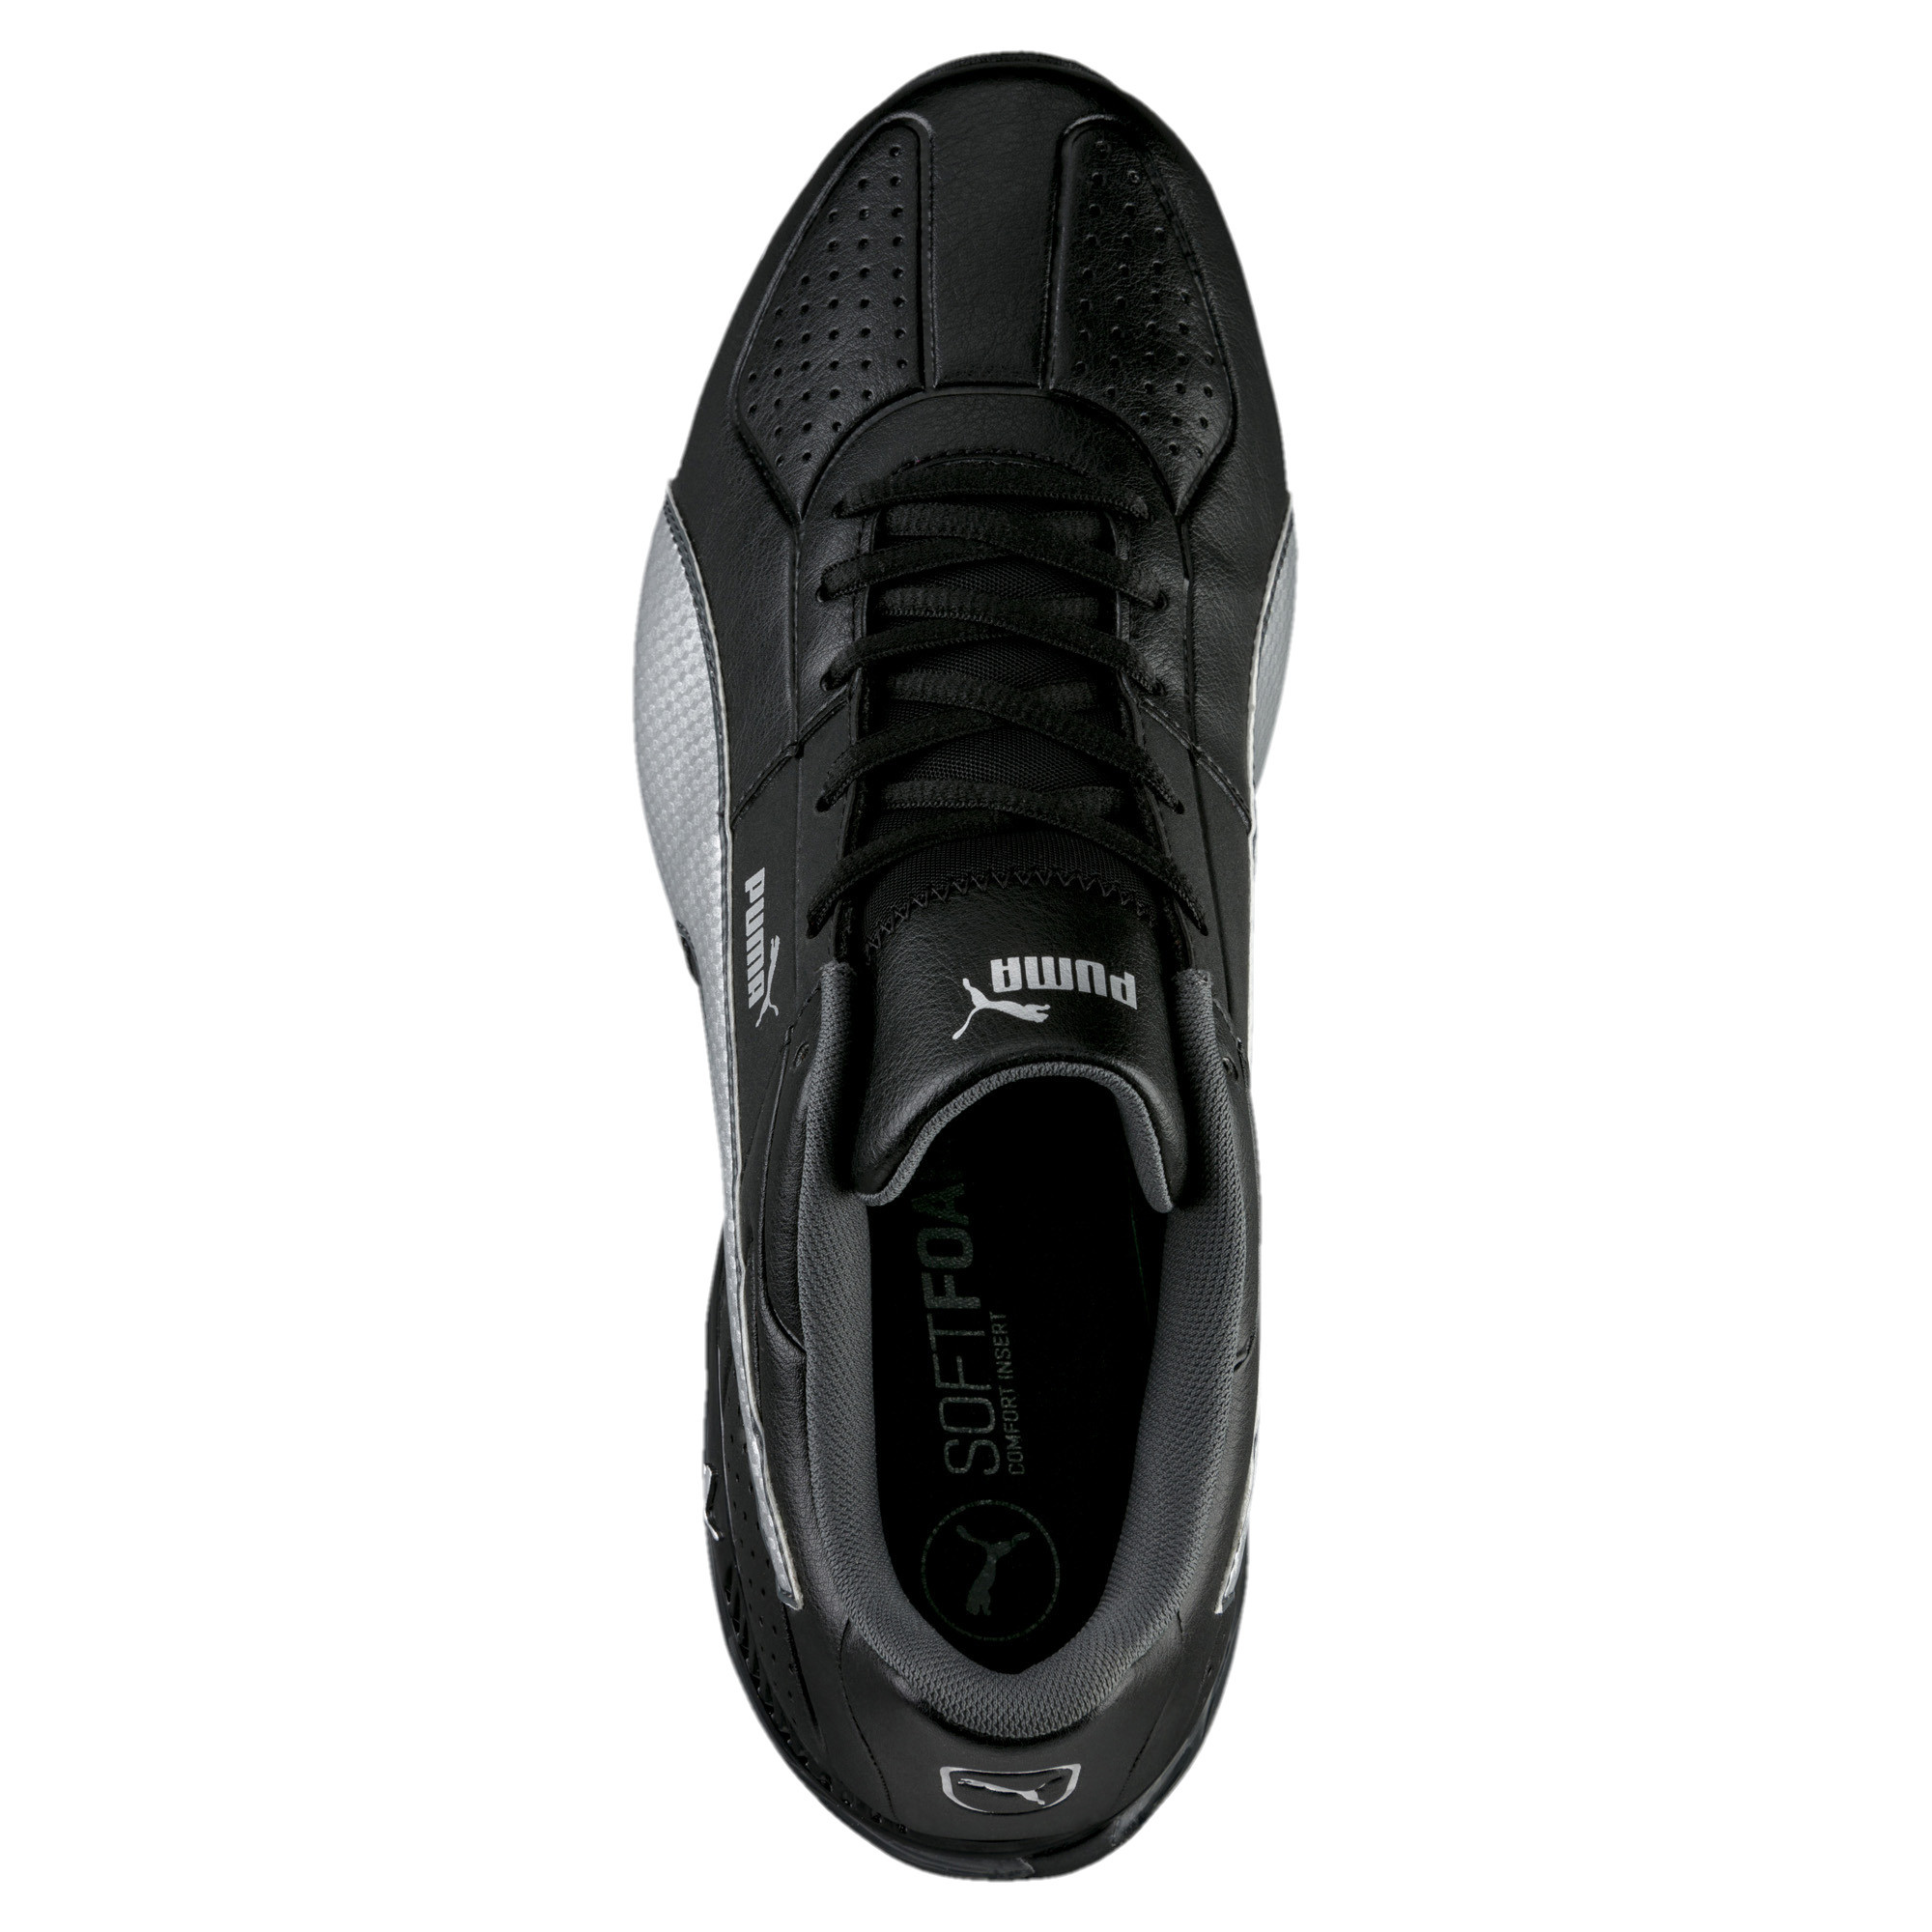 PUMA-Men-039-s-CELL-Surin-2-FM-Running-Shoes thumbnail 6